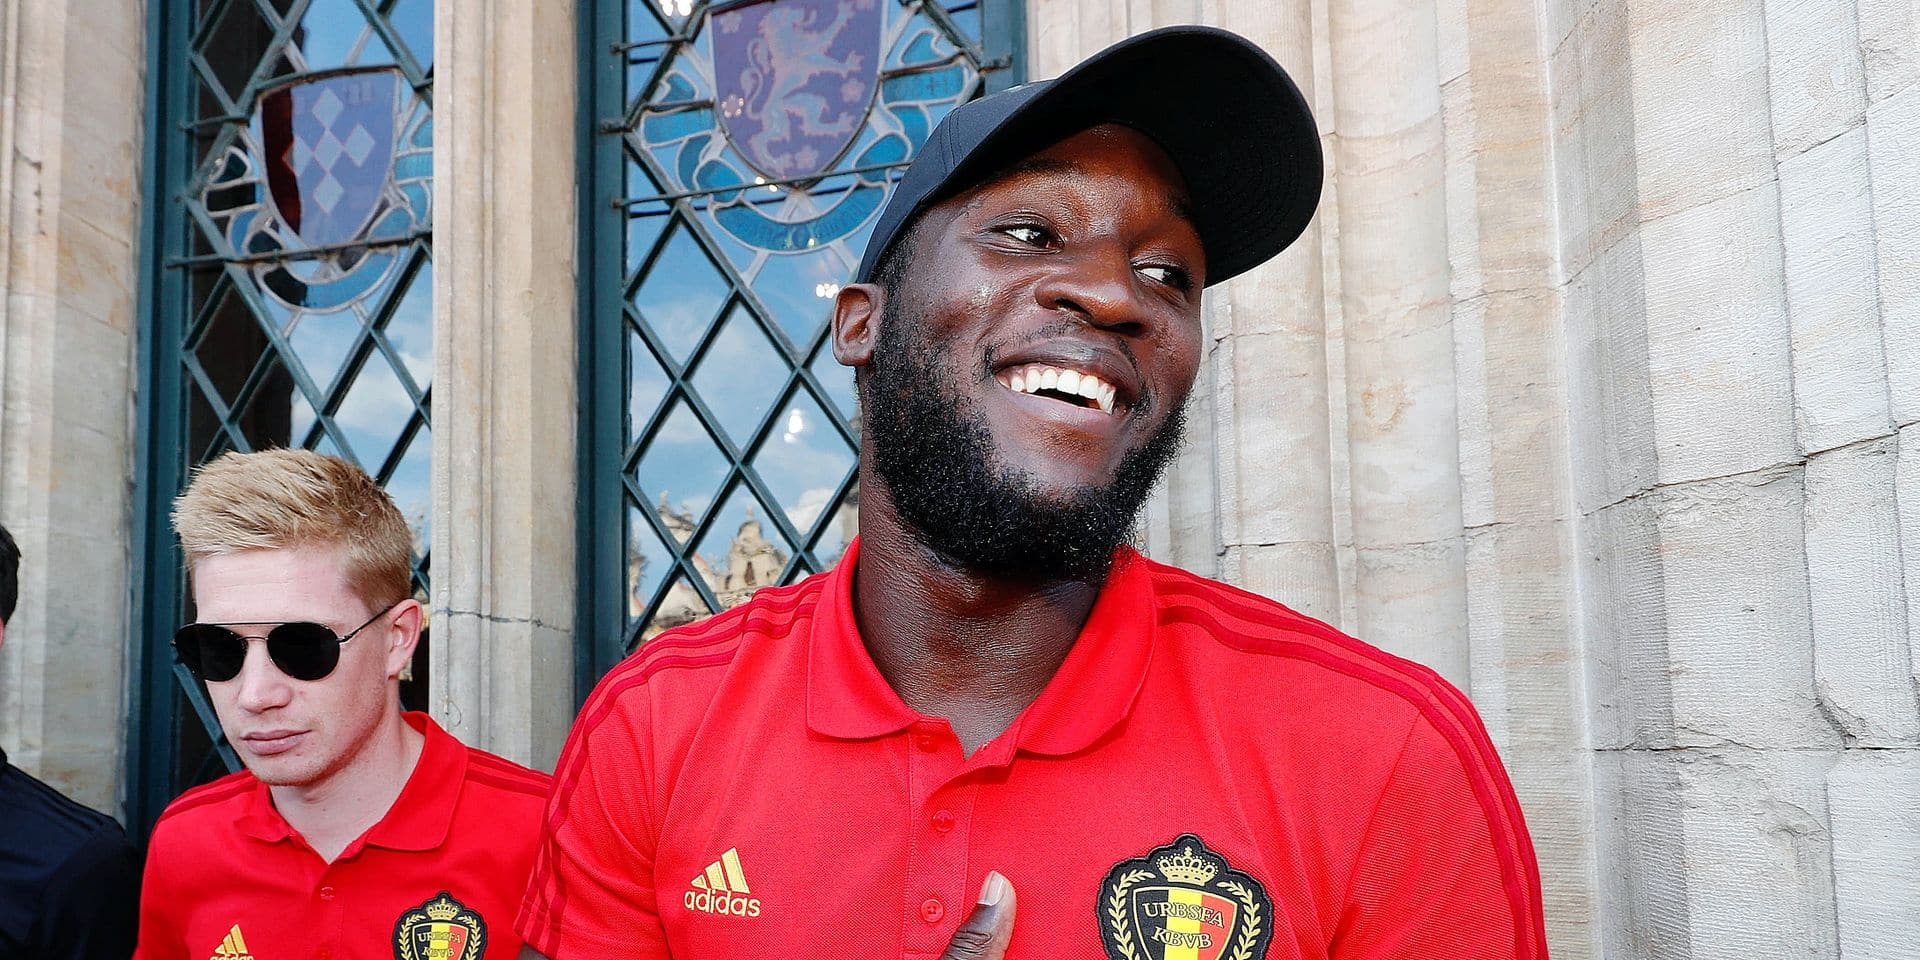 Belgium's Kevin De Bruyne and Belgium's Romelu Lukaku celebrate at the Grand-Place - Grote Markt in Brussels city center, as Belgian national soccer team Red Devils come to celebrate with supporters at the balcony of the city hall after reaching the semi-finals and winning the bronze medal at the 2018 Soccer World Cup in Russia, Sunday 15 July 2018. BELGA PHOTO POOL YVES HERMAN